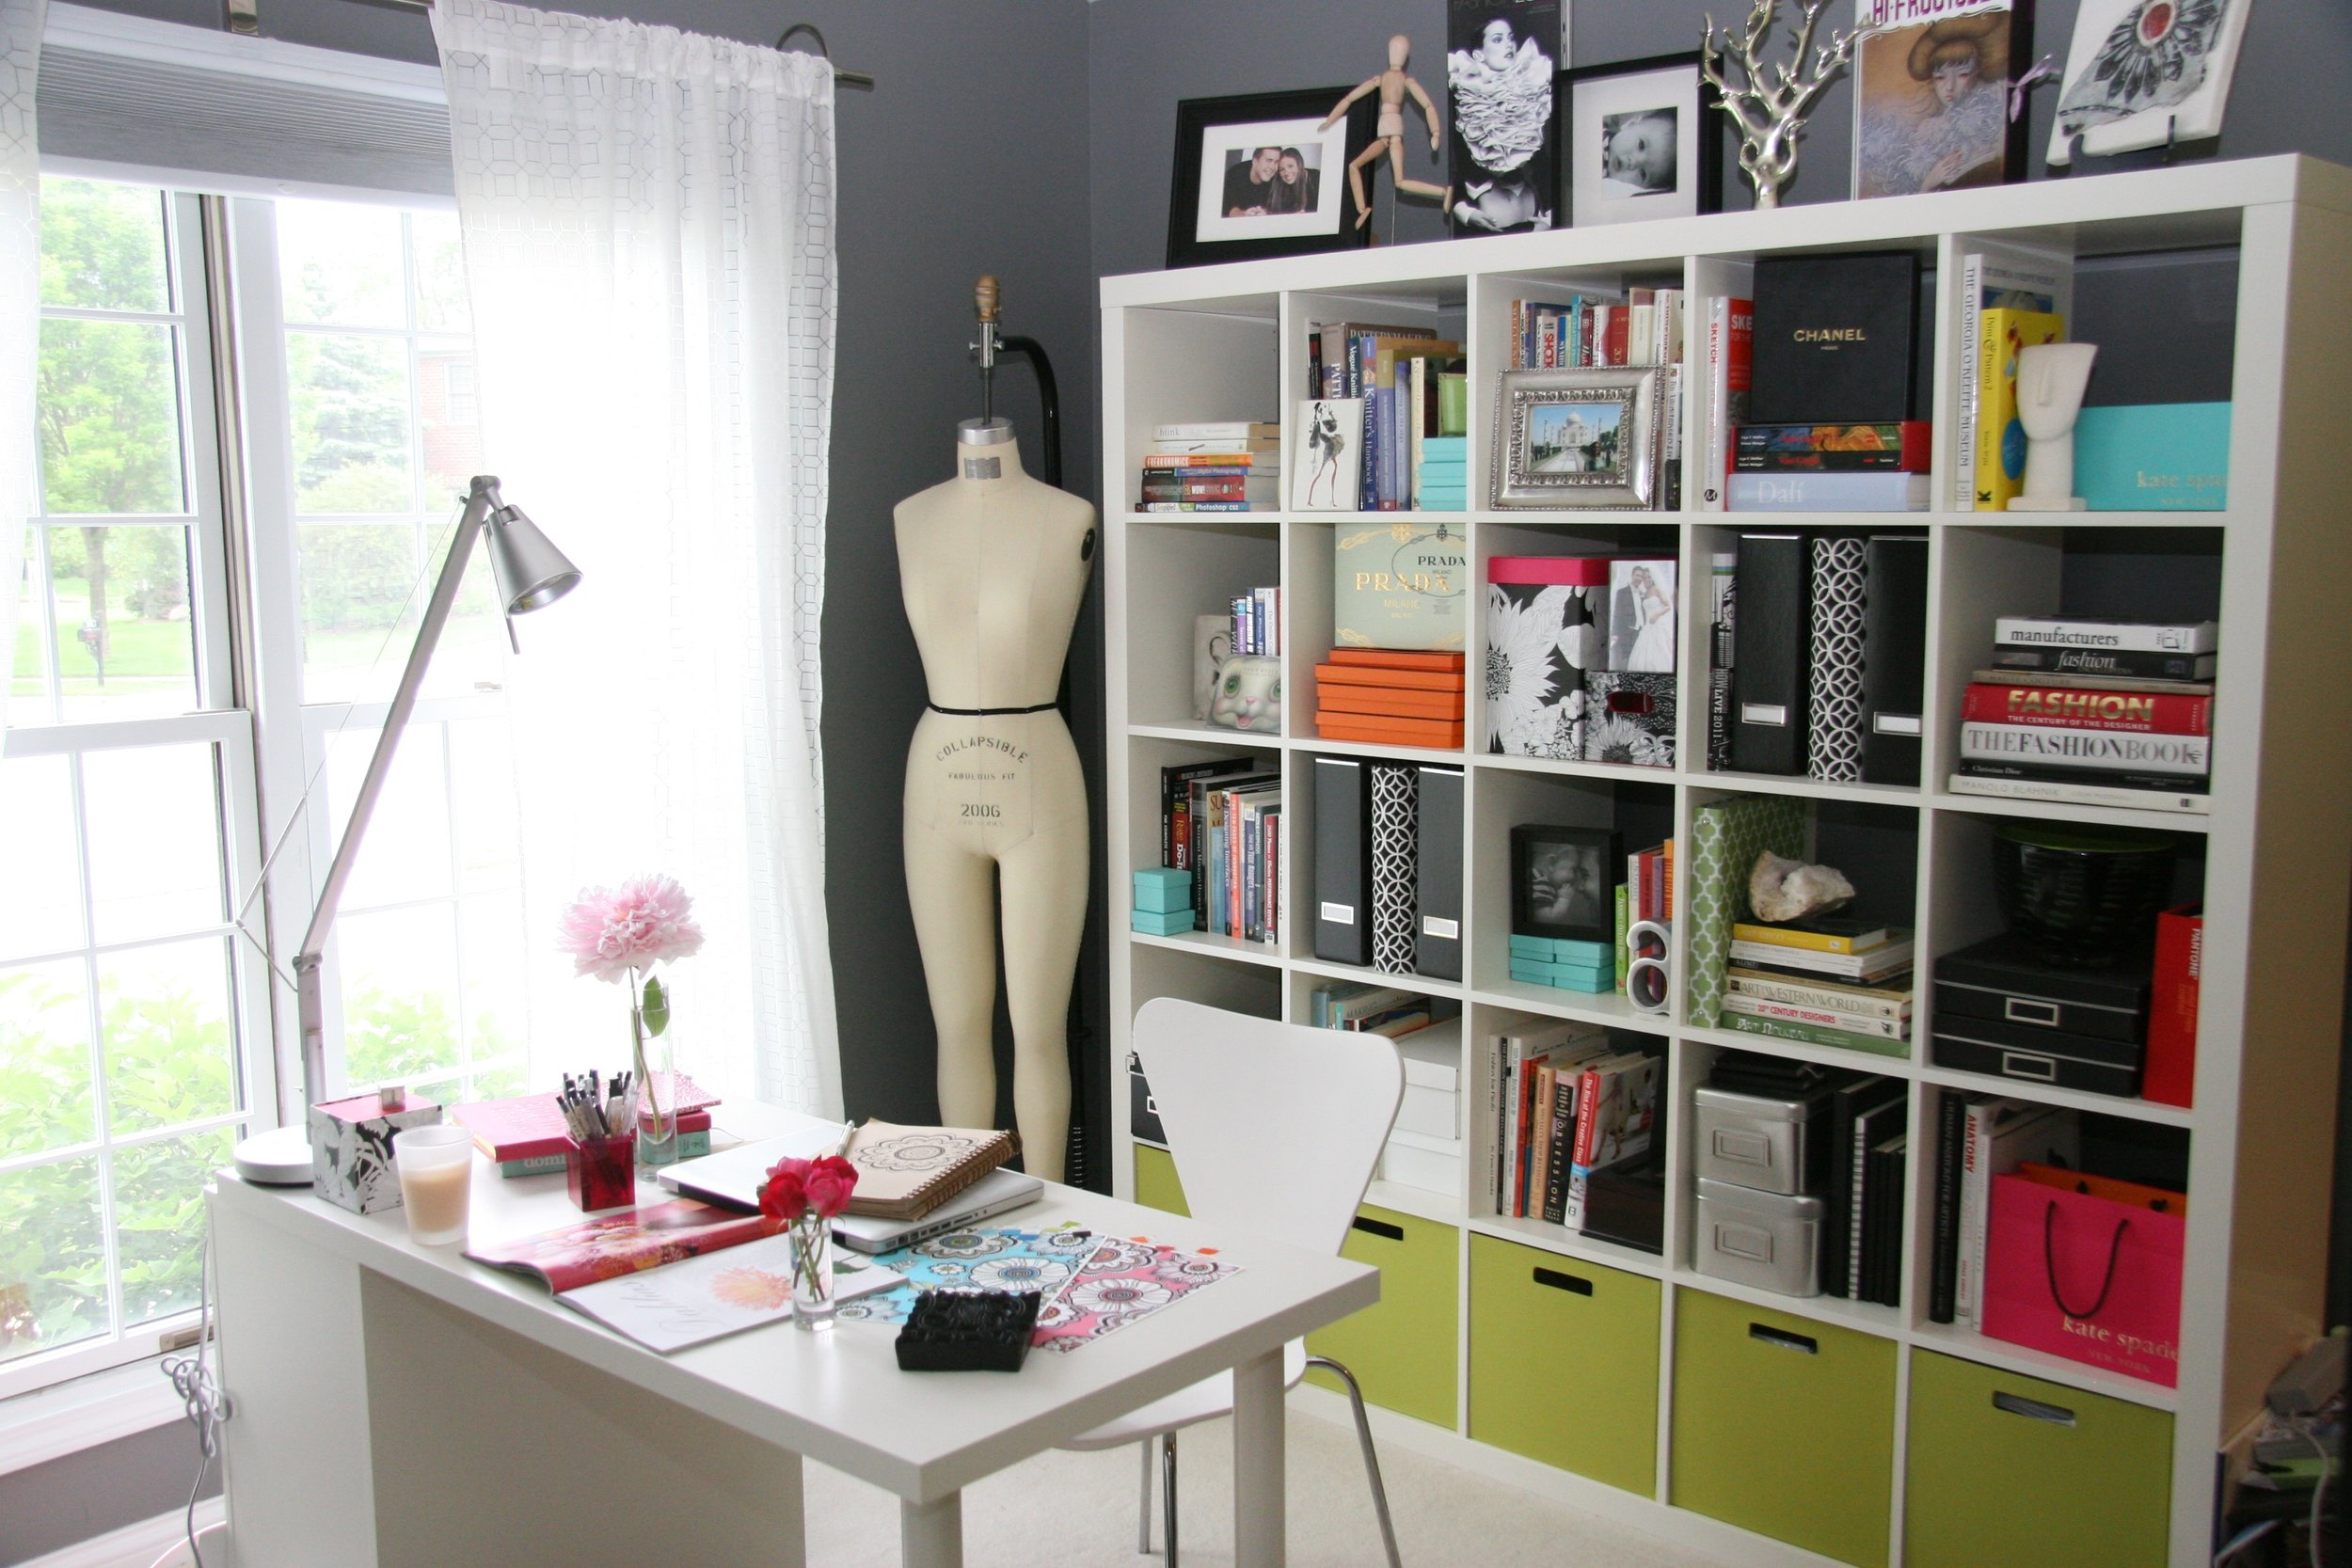 Andie Hanna's Studio. Image courtesy of the artist.